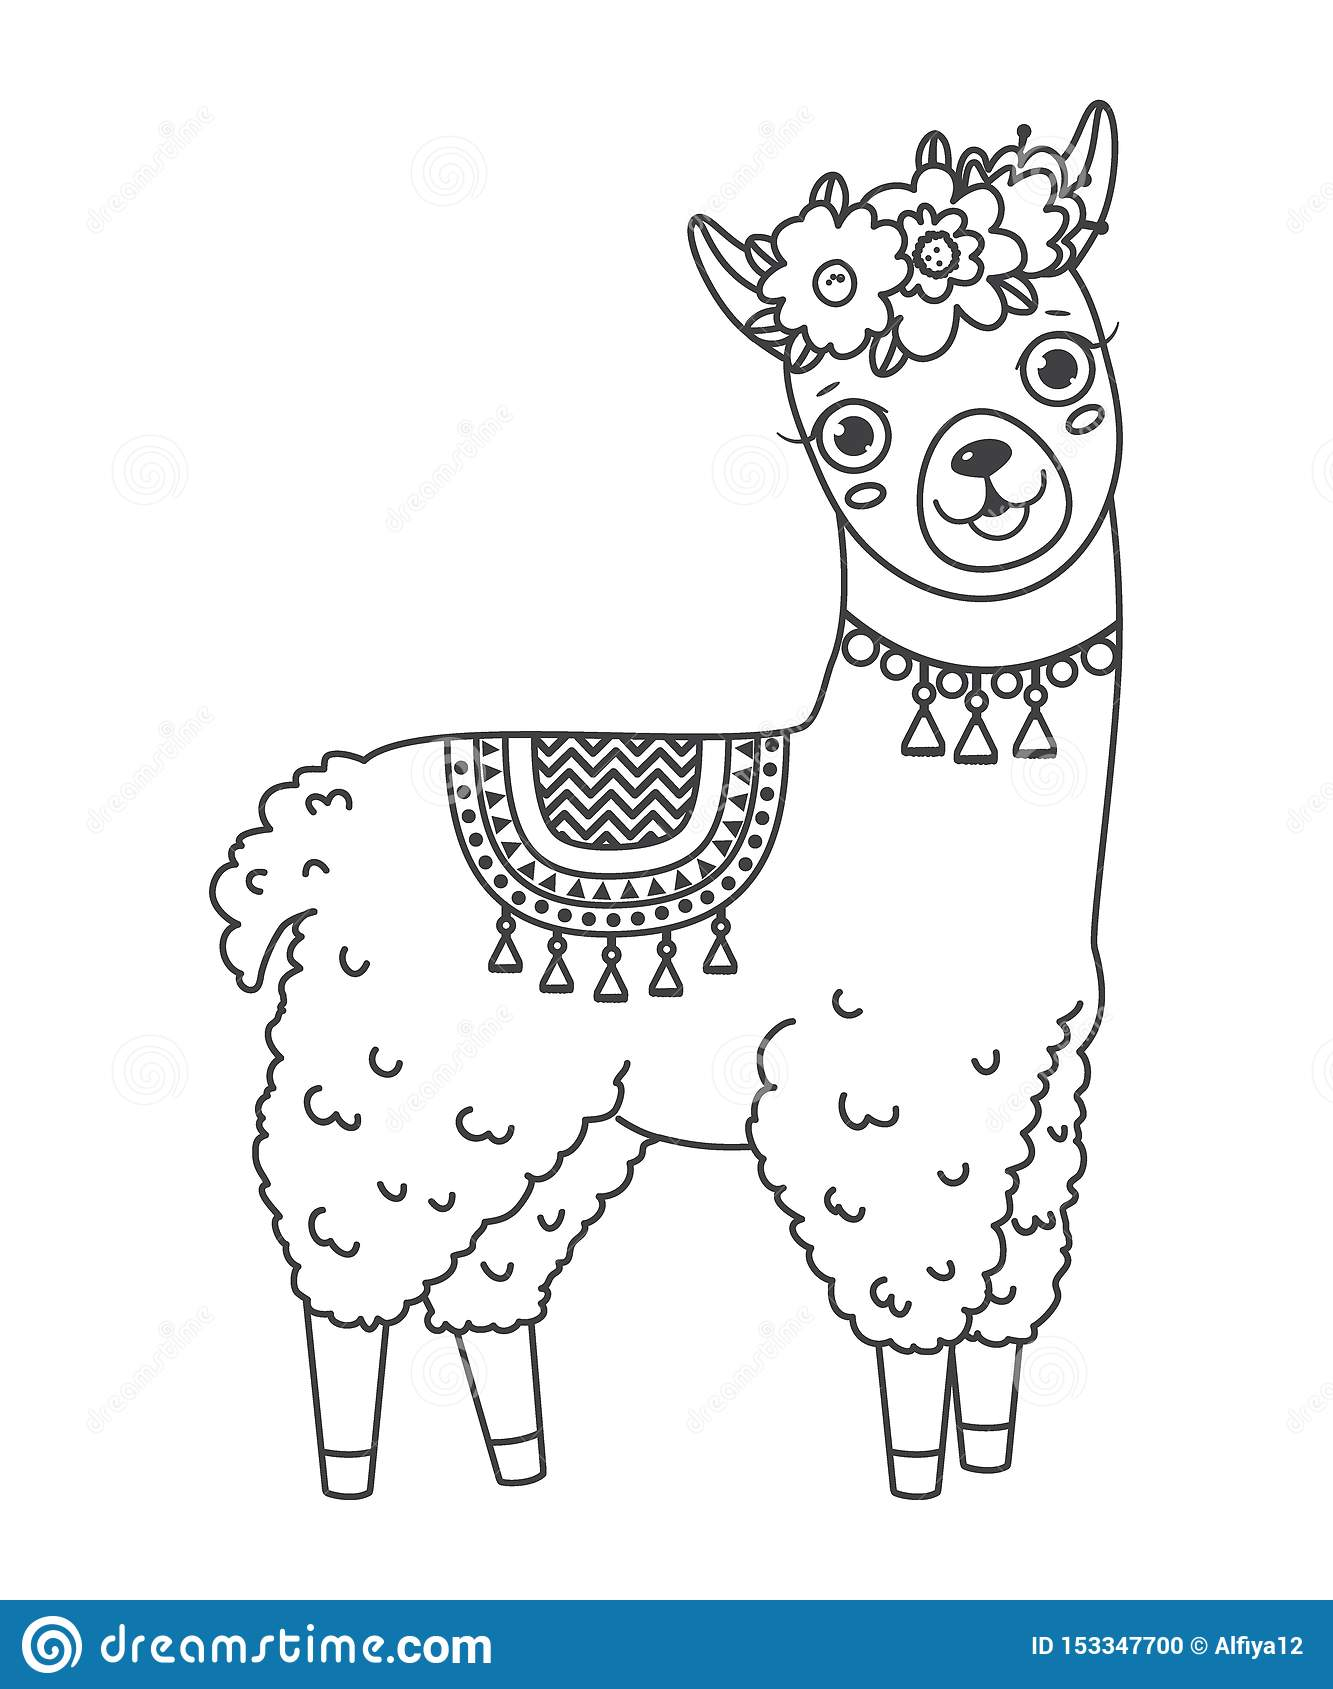 Cute Outline Doodle Jumping Llama With Hand Drawn Elements